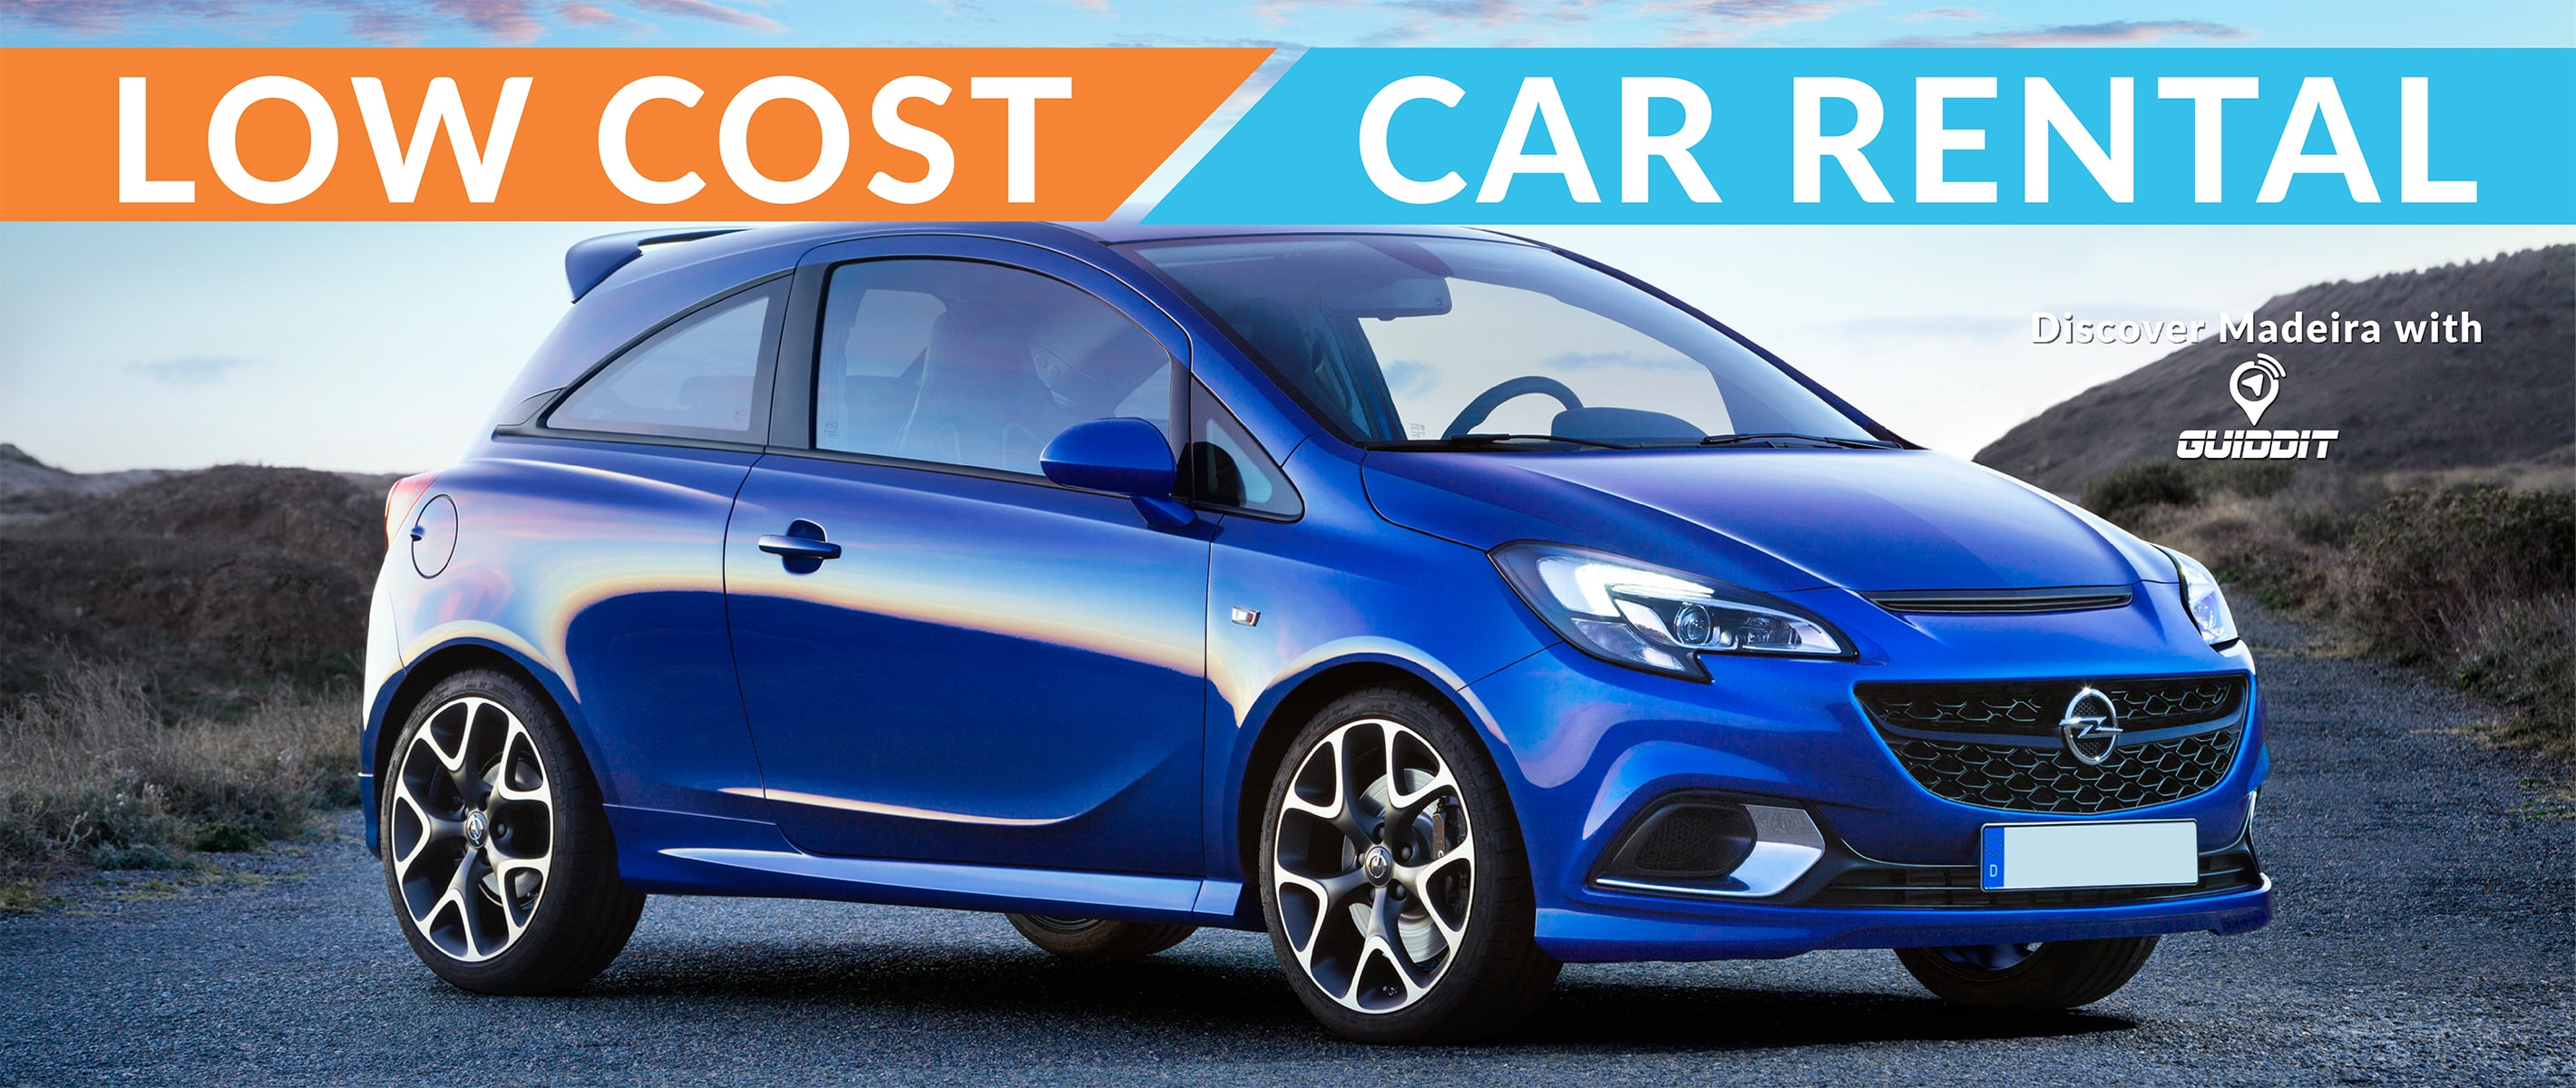 Low Cost Car Rent Madeira Best Prices From 20 Day Cheapest Safe